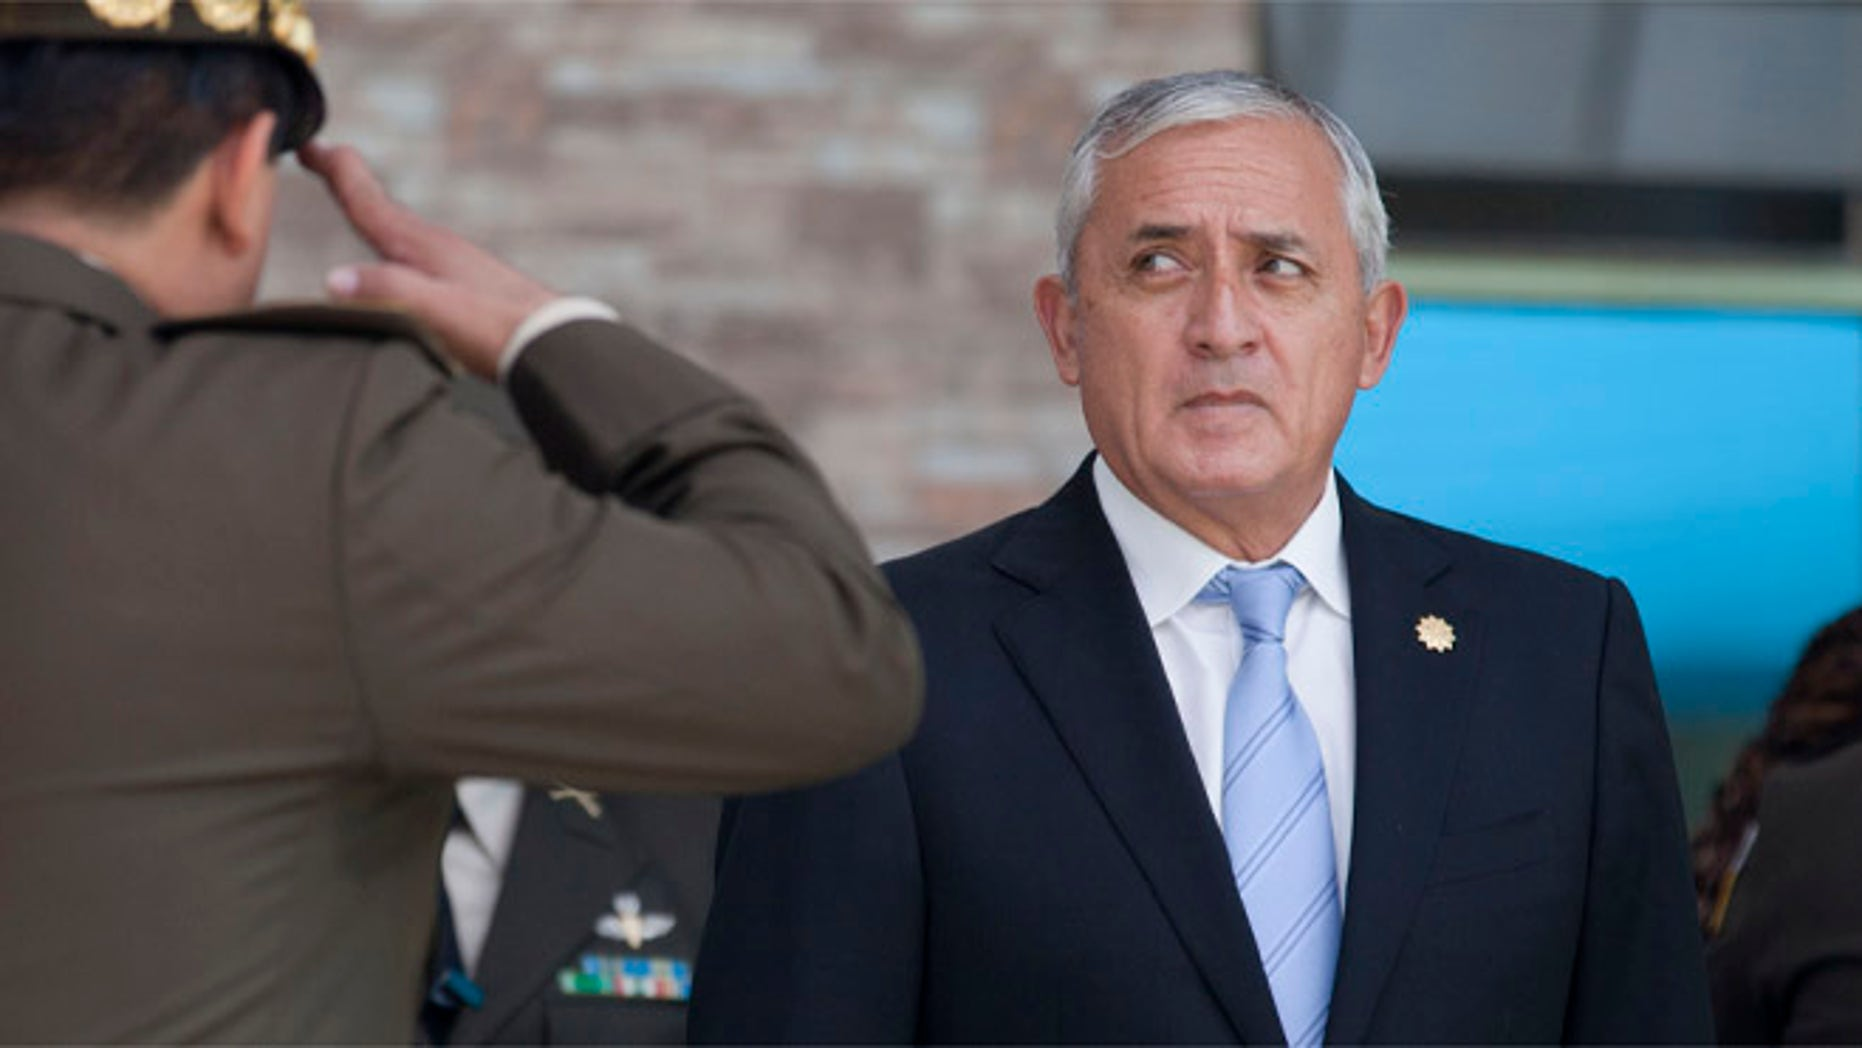 FILE - In this Aug. 14, 2015 file photo, a soldier salutes Guatemala's President Otto Perez Molina during a swearing-in ceremony for his newly-named defense minister, in Guatemala City. The attorney generalâs office of Guatemala issued a statement, urging the embattled leader to step down. The office said in a statement posted on its website late Wednesday, Aug. 26, 2015, that Perez Molina should âsubmit his resignation, to prevent ungovernability.â (AP Photo/Moises Castillo, File)